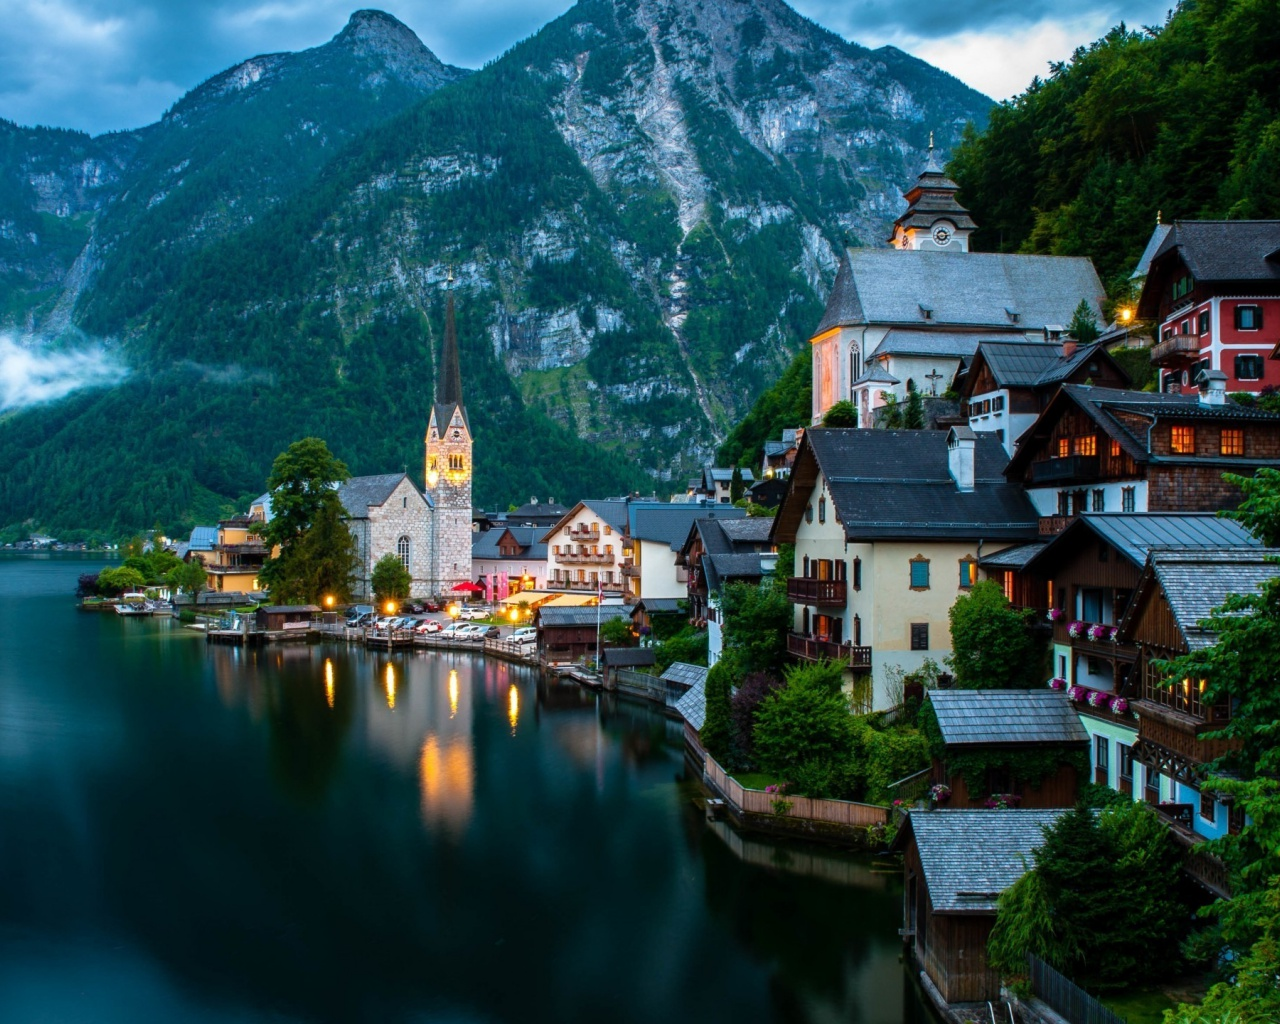 Os X Wallpapers Hd 1280x1024 Hallstatt Austria Desktop Pc And Mac Wallpaper